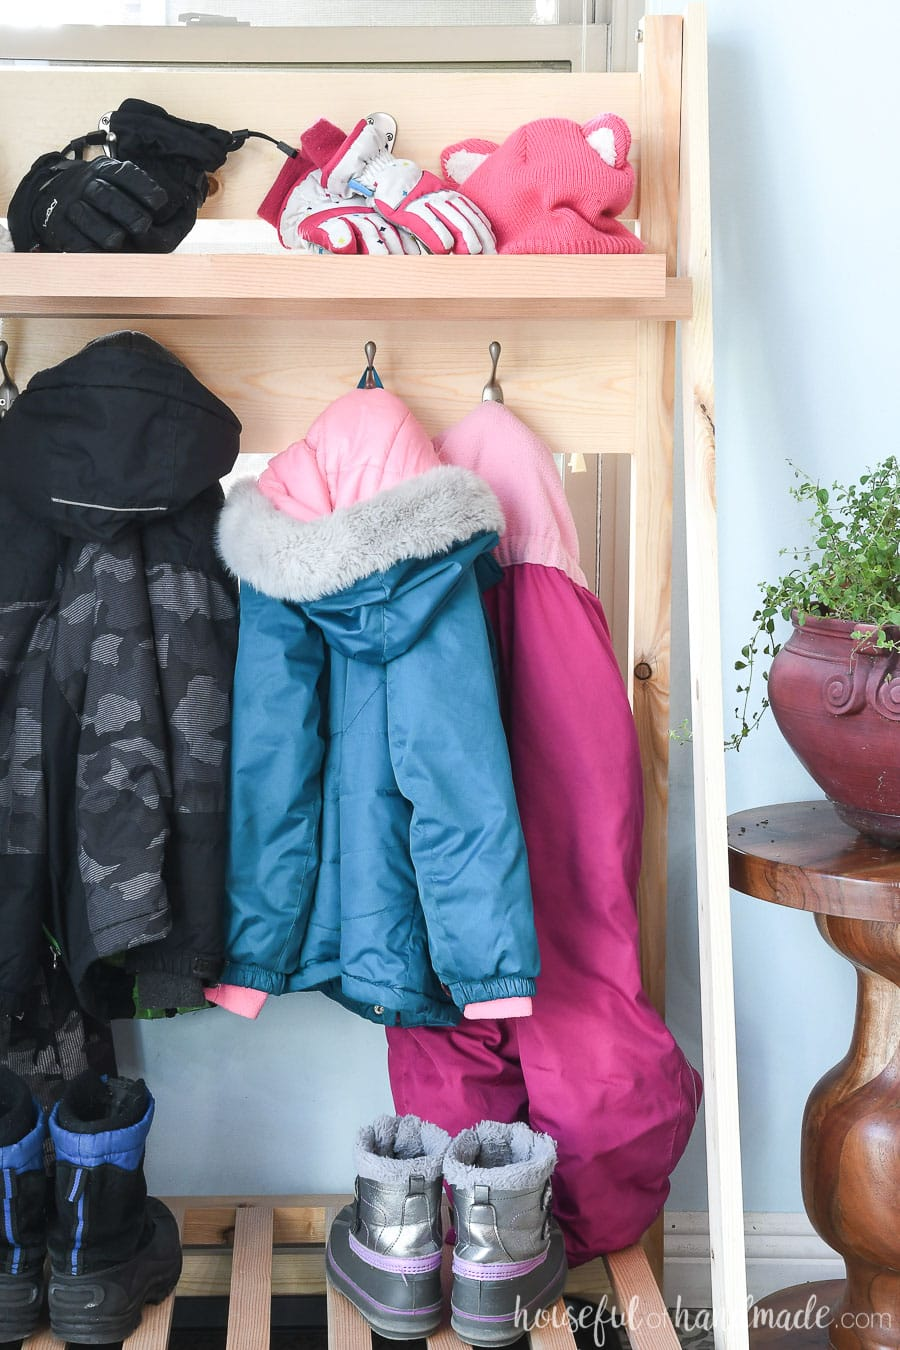 View of the fold-away mudroom shelves with coats and winter gear hanging on it.